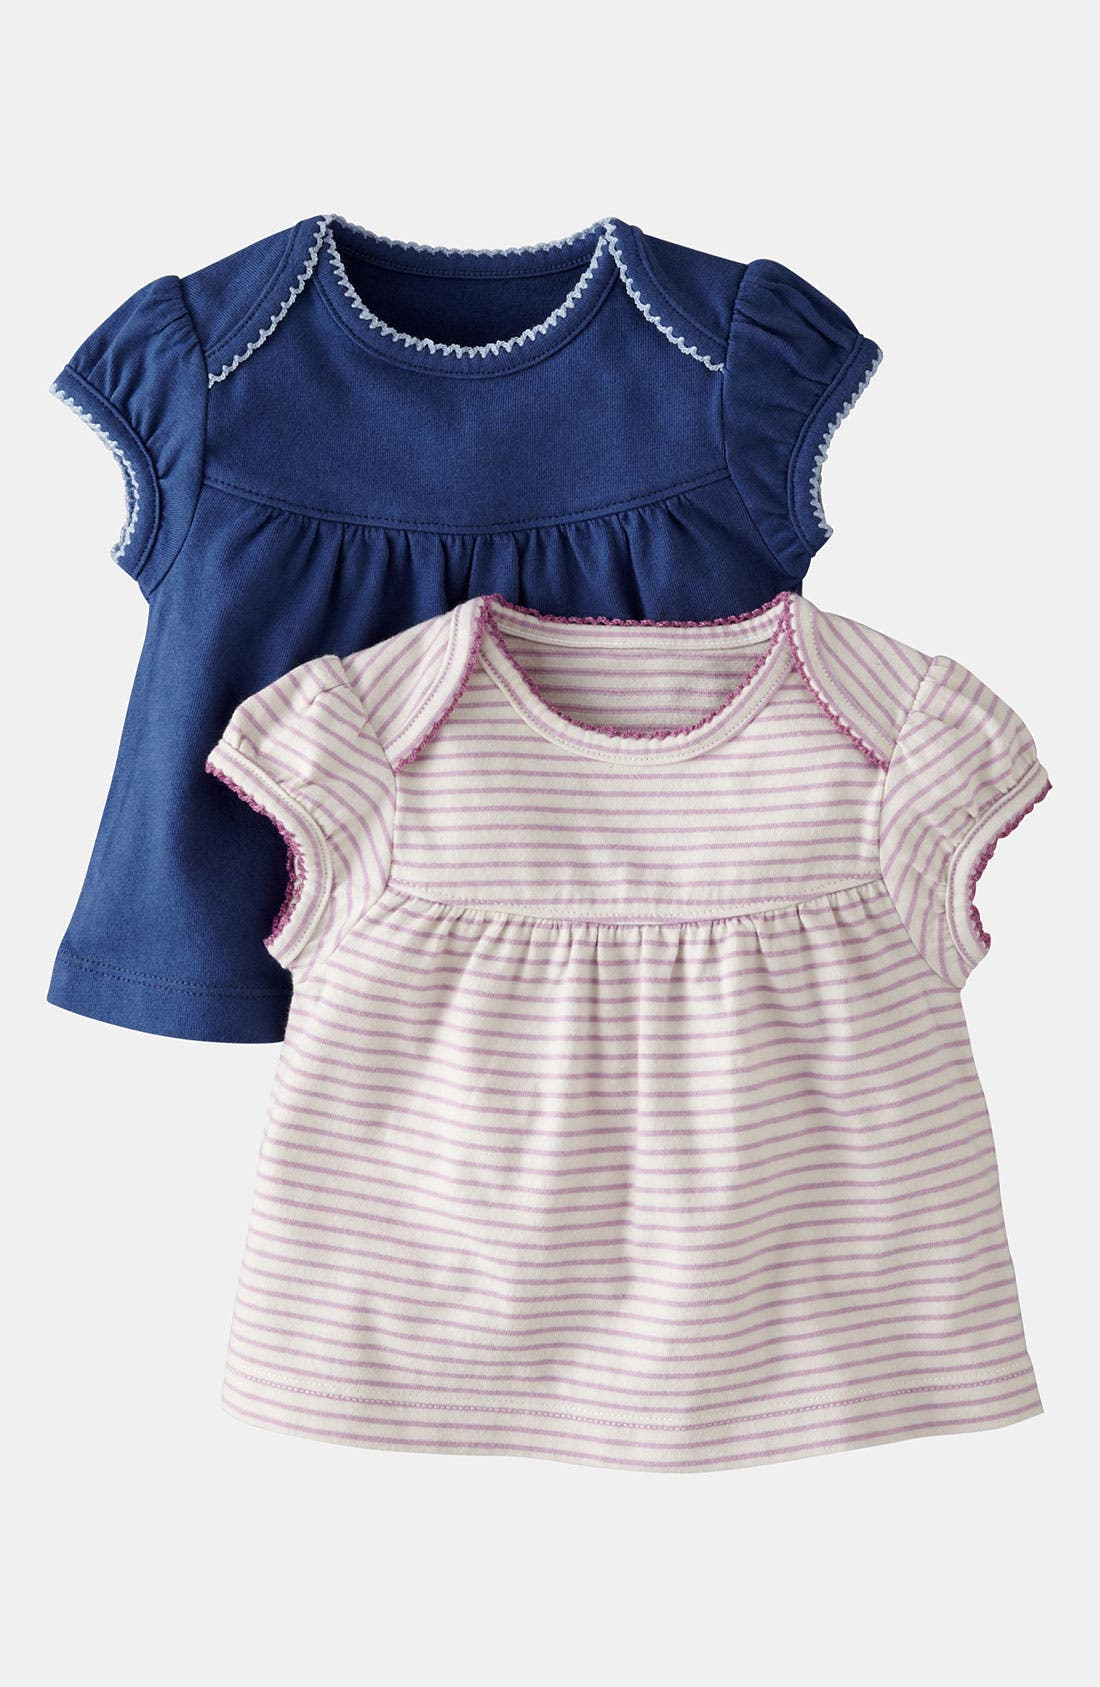 Main Image - Mini Boden 'Pretty' Tee (2-Pack) (Baby)